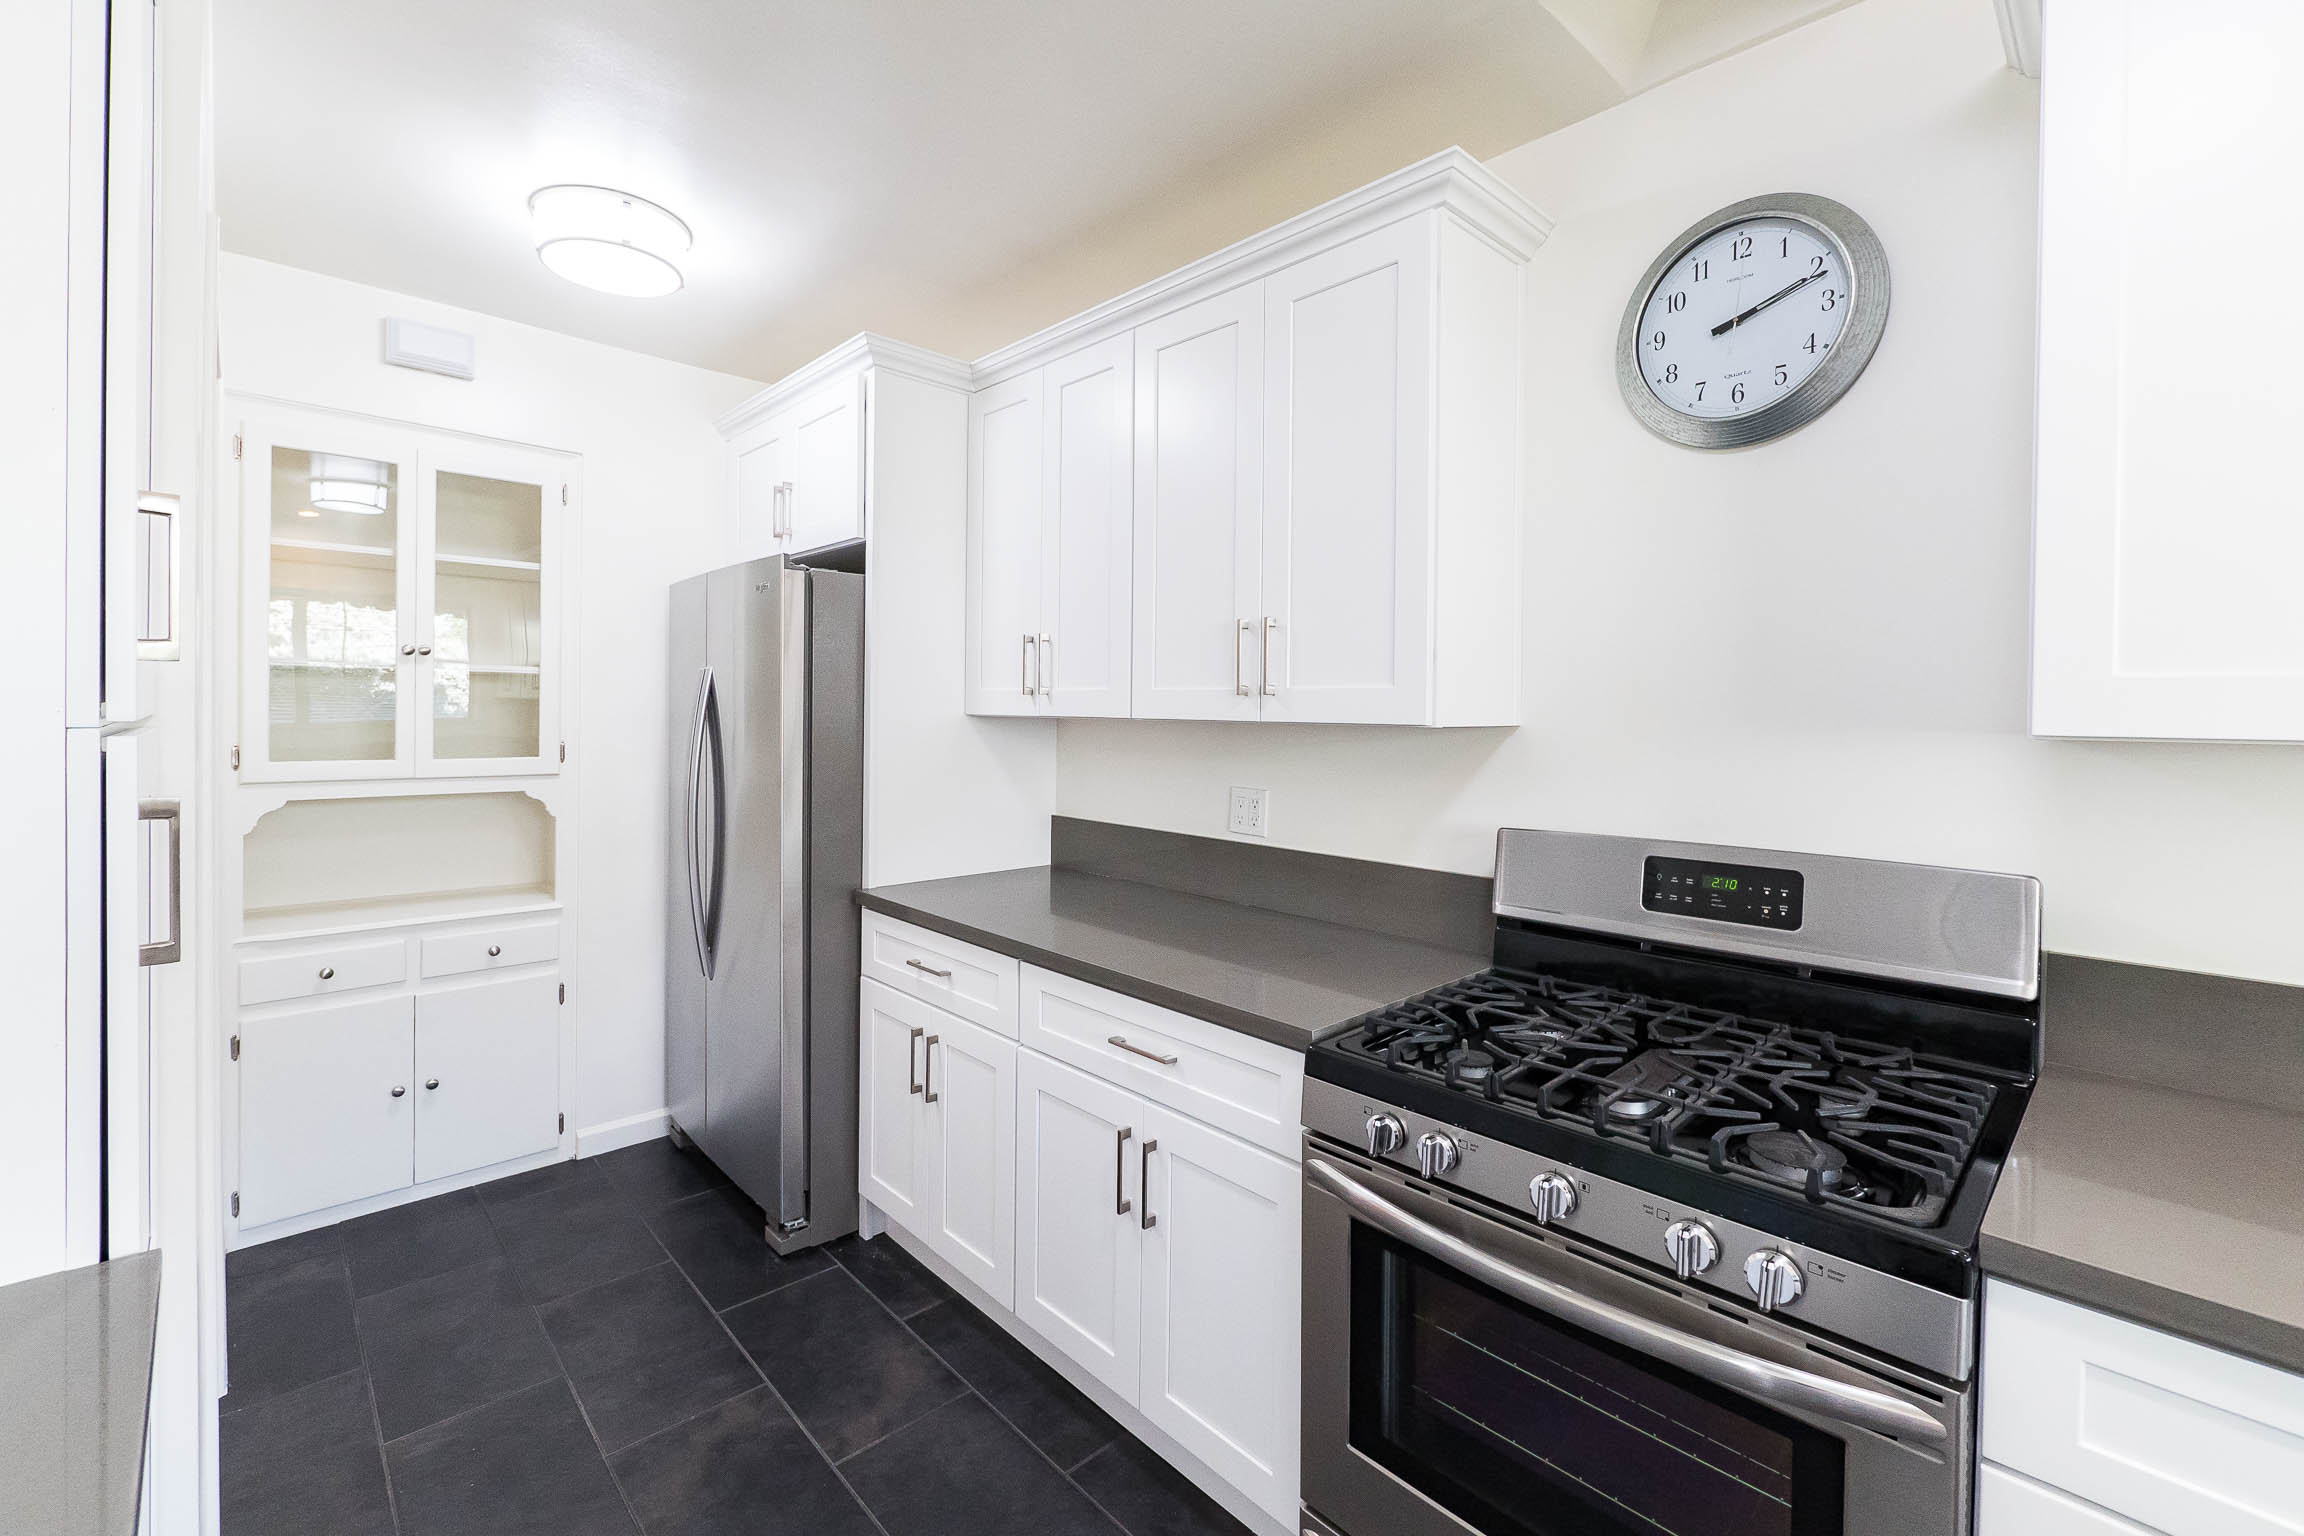 Stunning Upper Two Bedroom | Completely Renovated Kitchen | Amazing Silver Lake Location | Garage Parking and In Unit Washer & Dryer